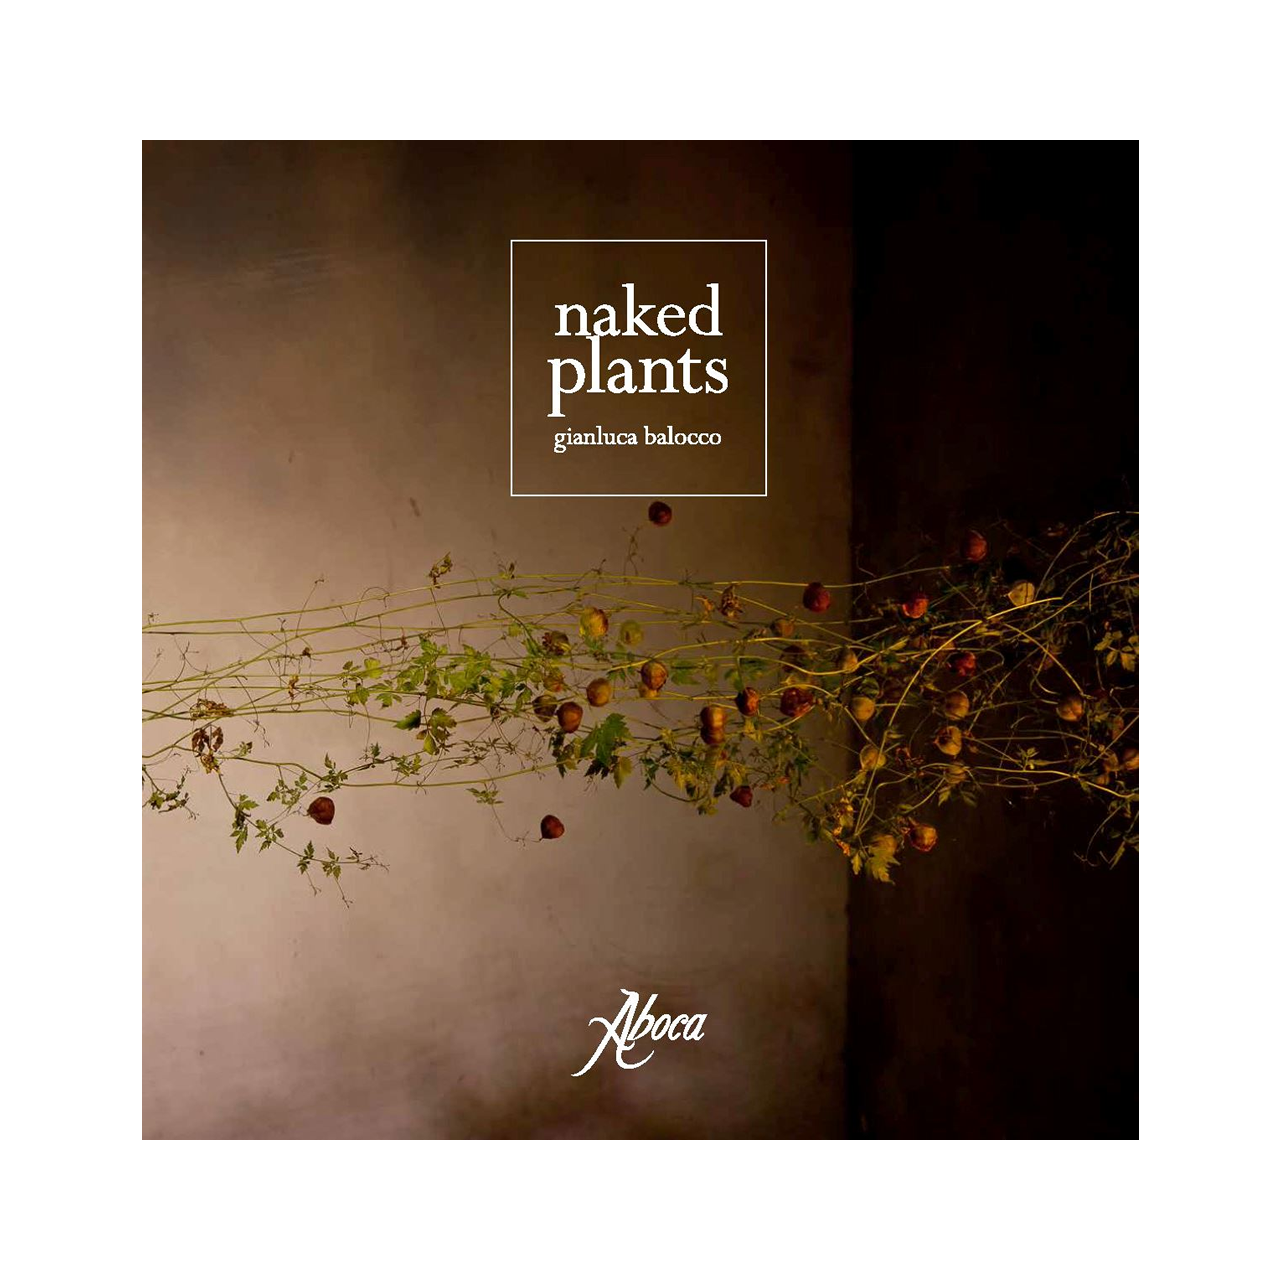 naked plants - project